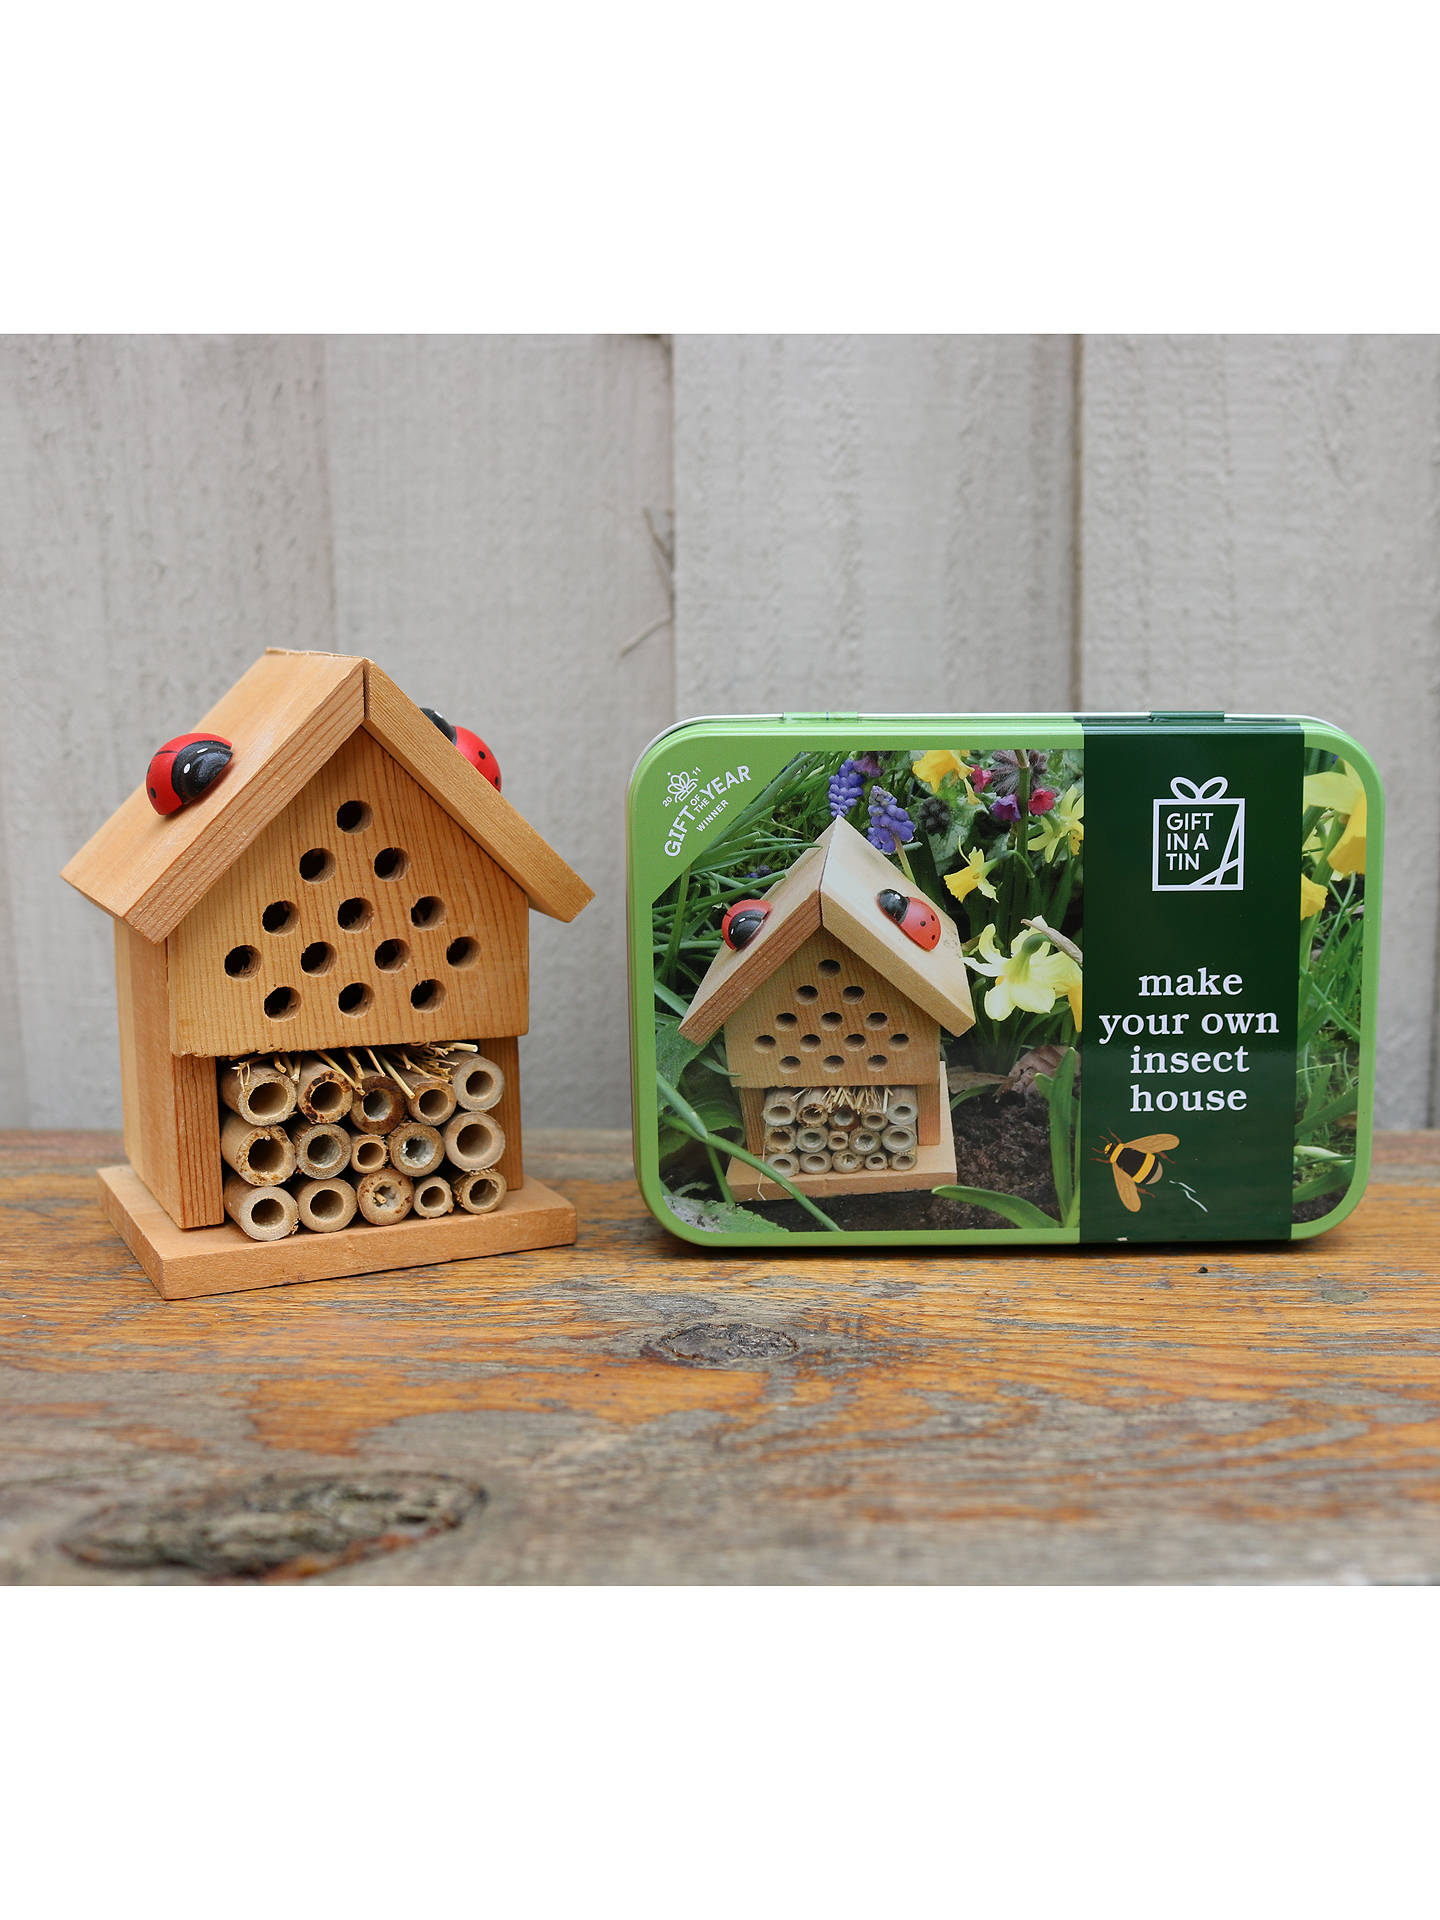 Buy Apples to Pears Gift In a Tin Make Your Own Insect House Craft Kit Online at johnlewis.com